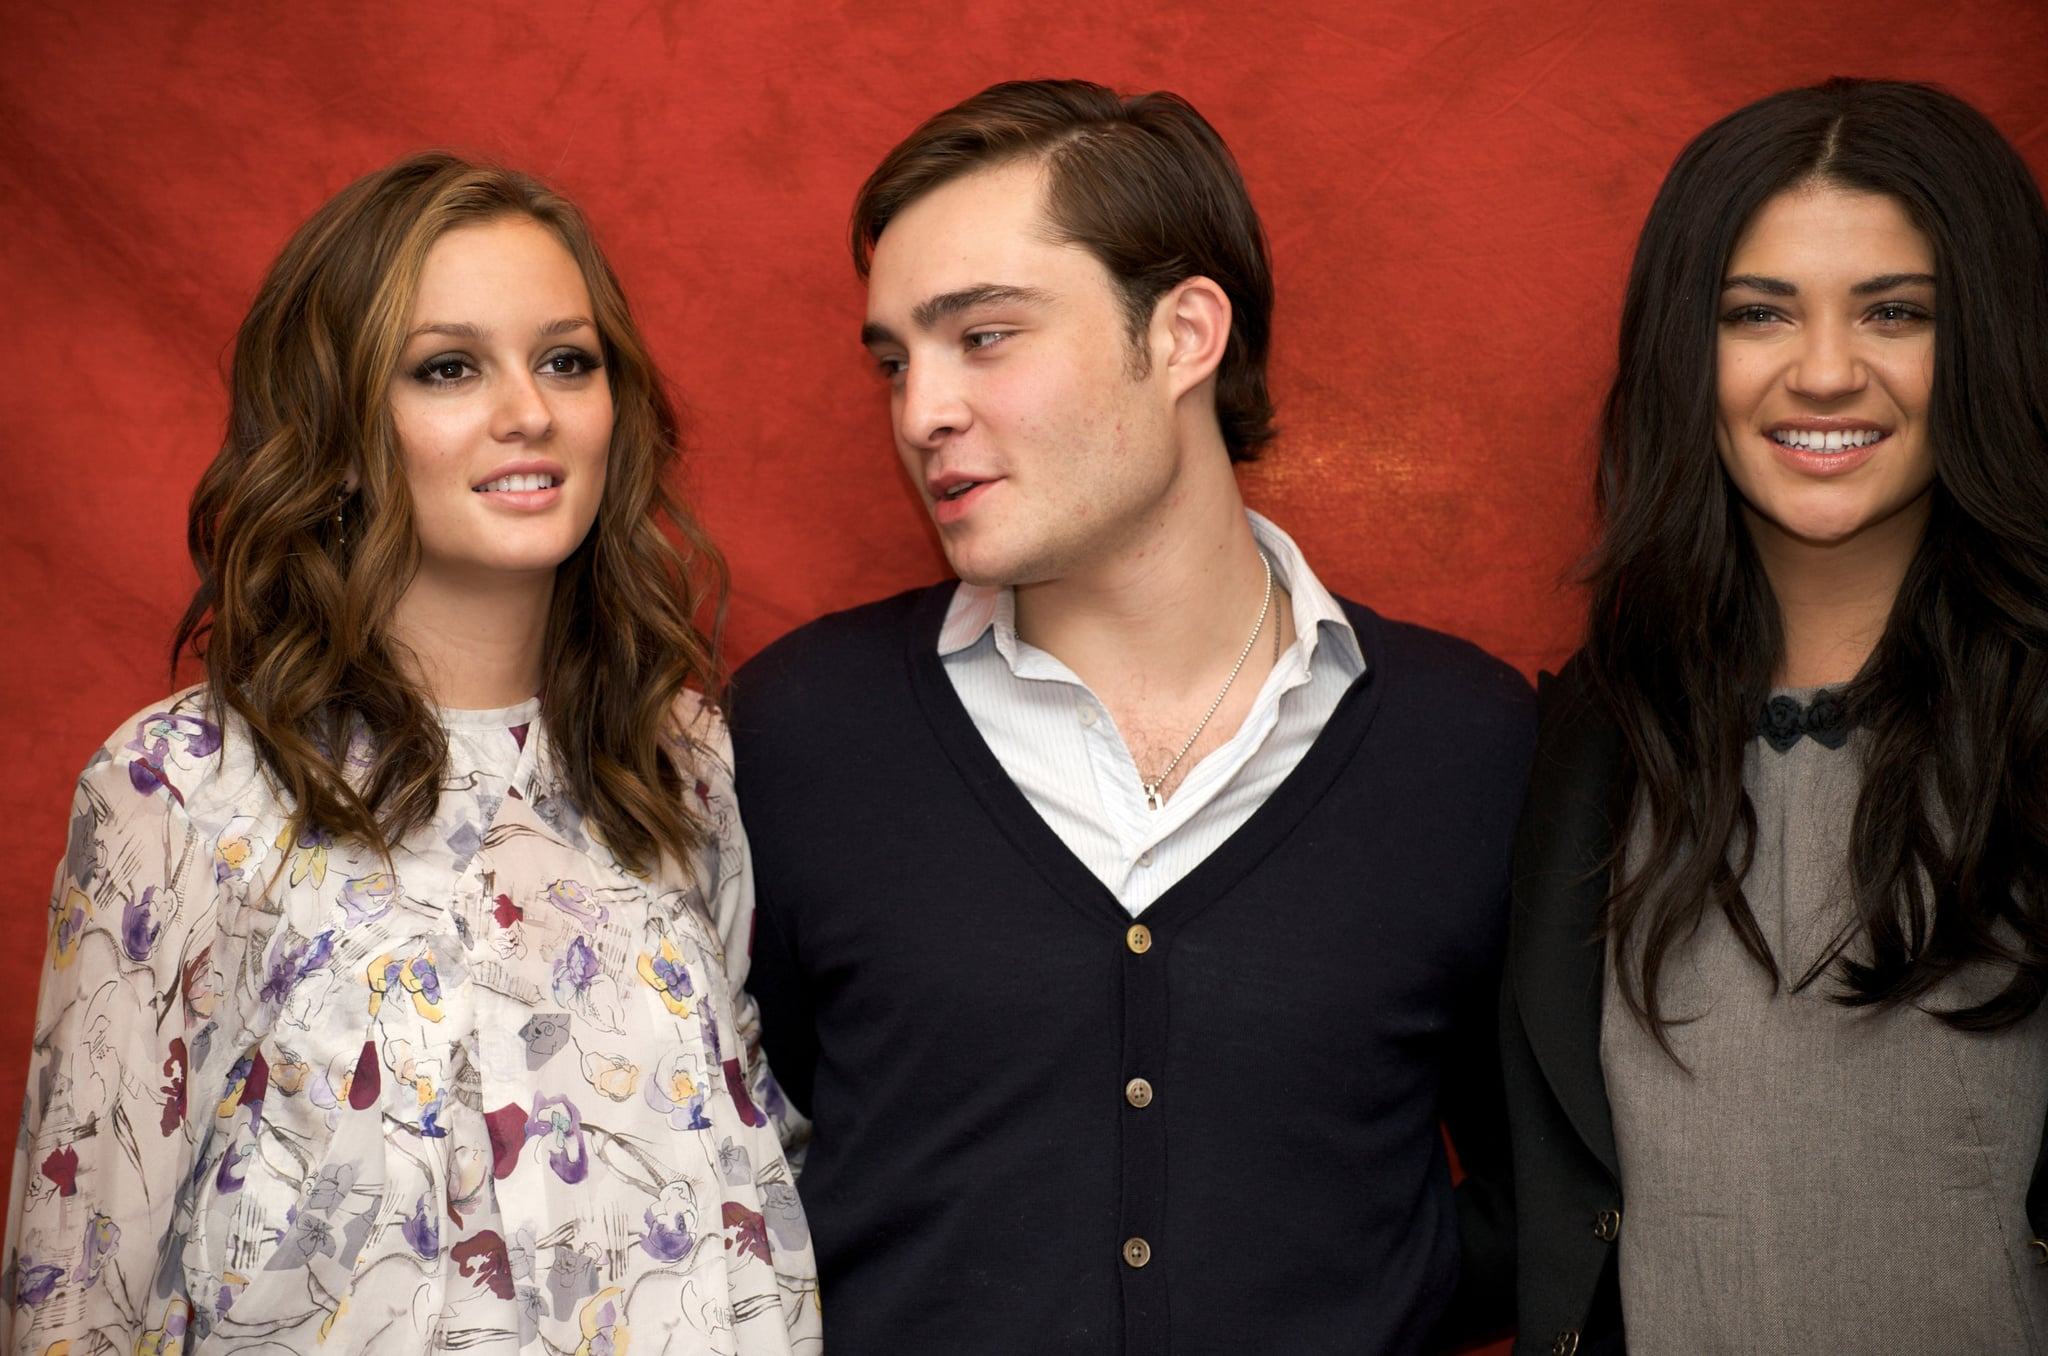 leighton meester ed westwick and jessica szohr posed for